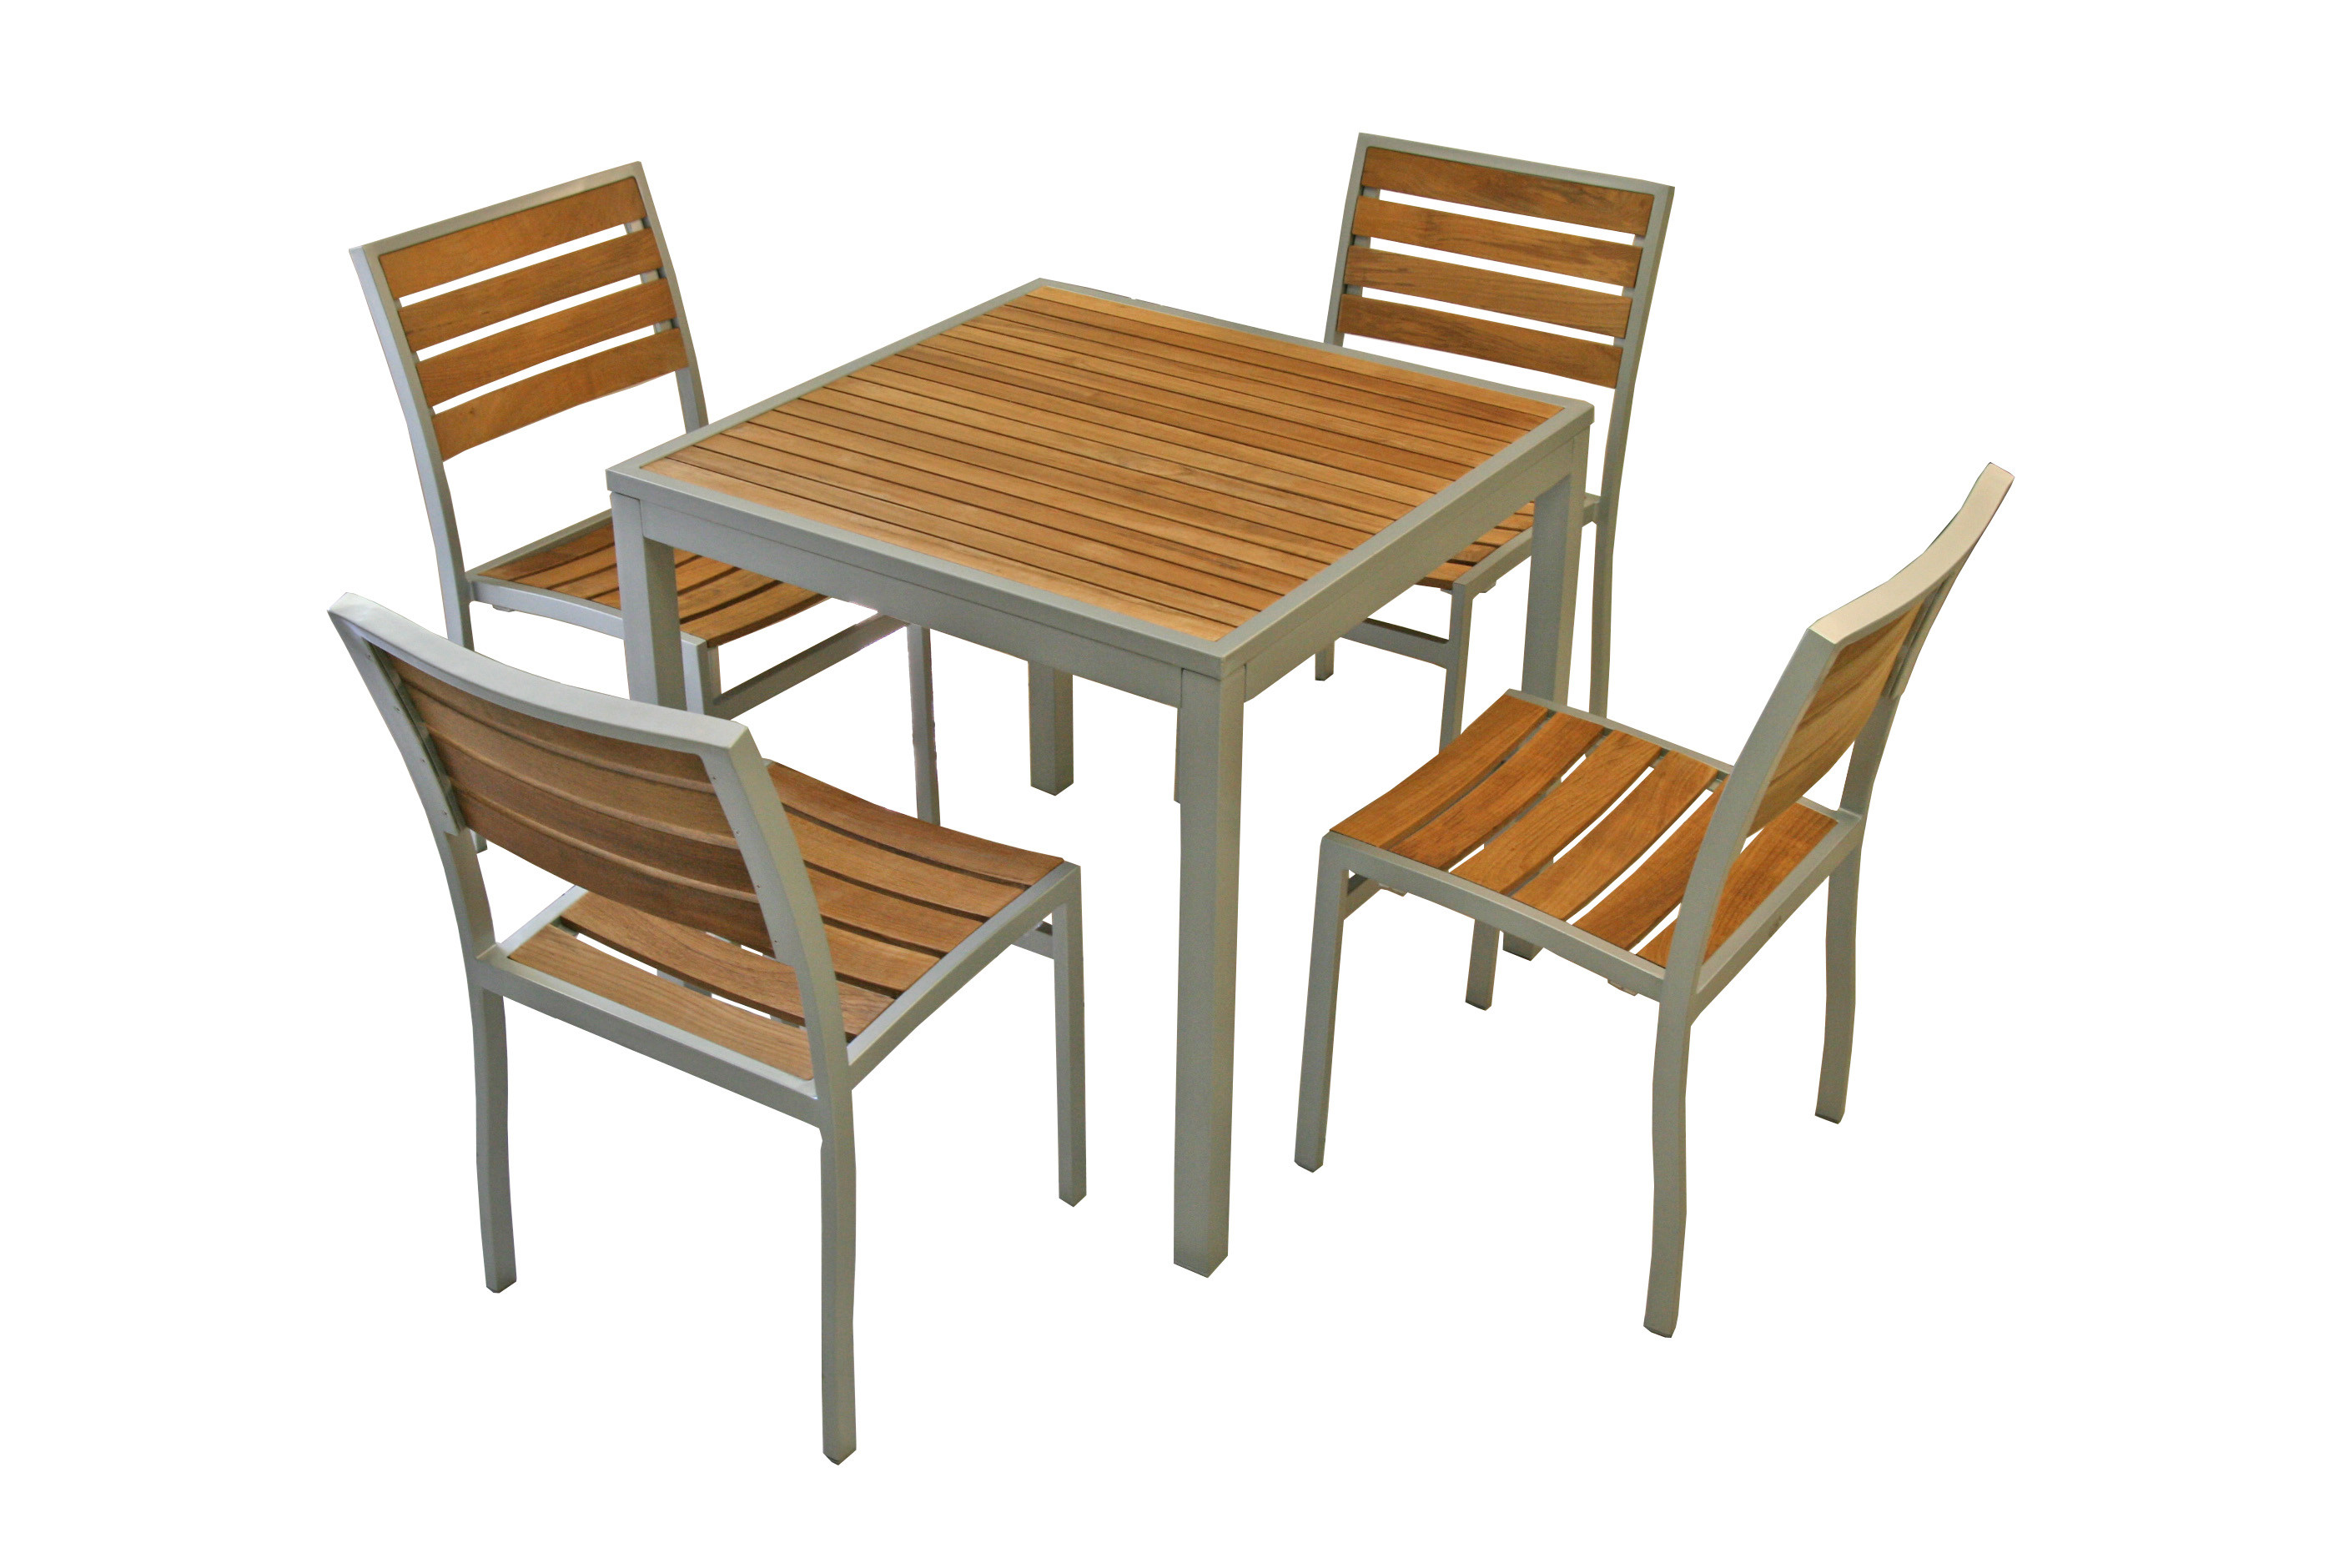 Best ideas about Restaurant Patio Furniture . Save or Pin mercial Aluminum Outdoor Restaurant Chairs Cedar Key Now.